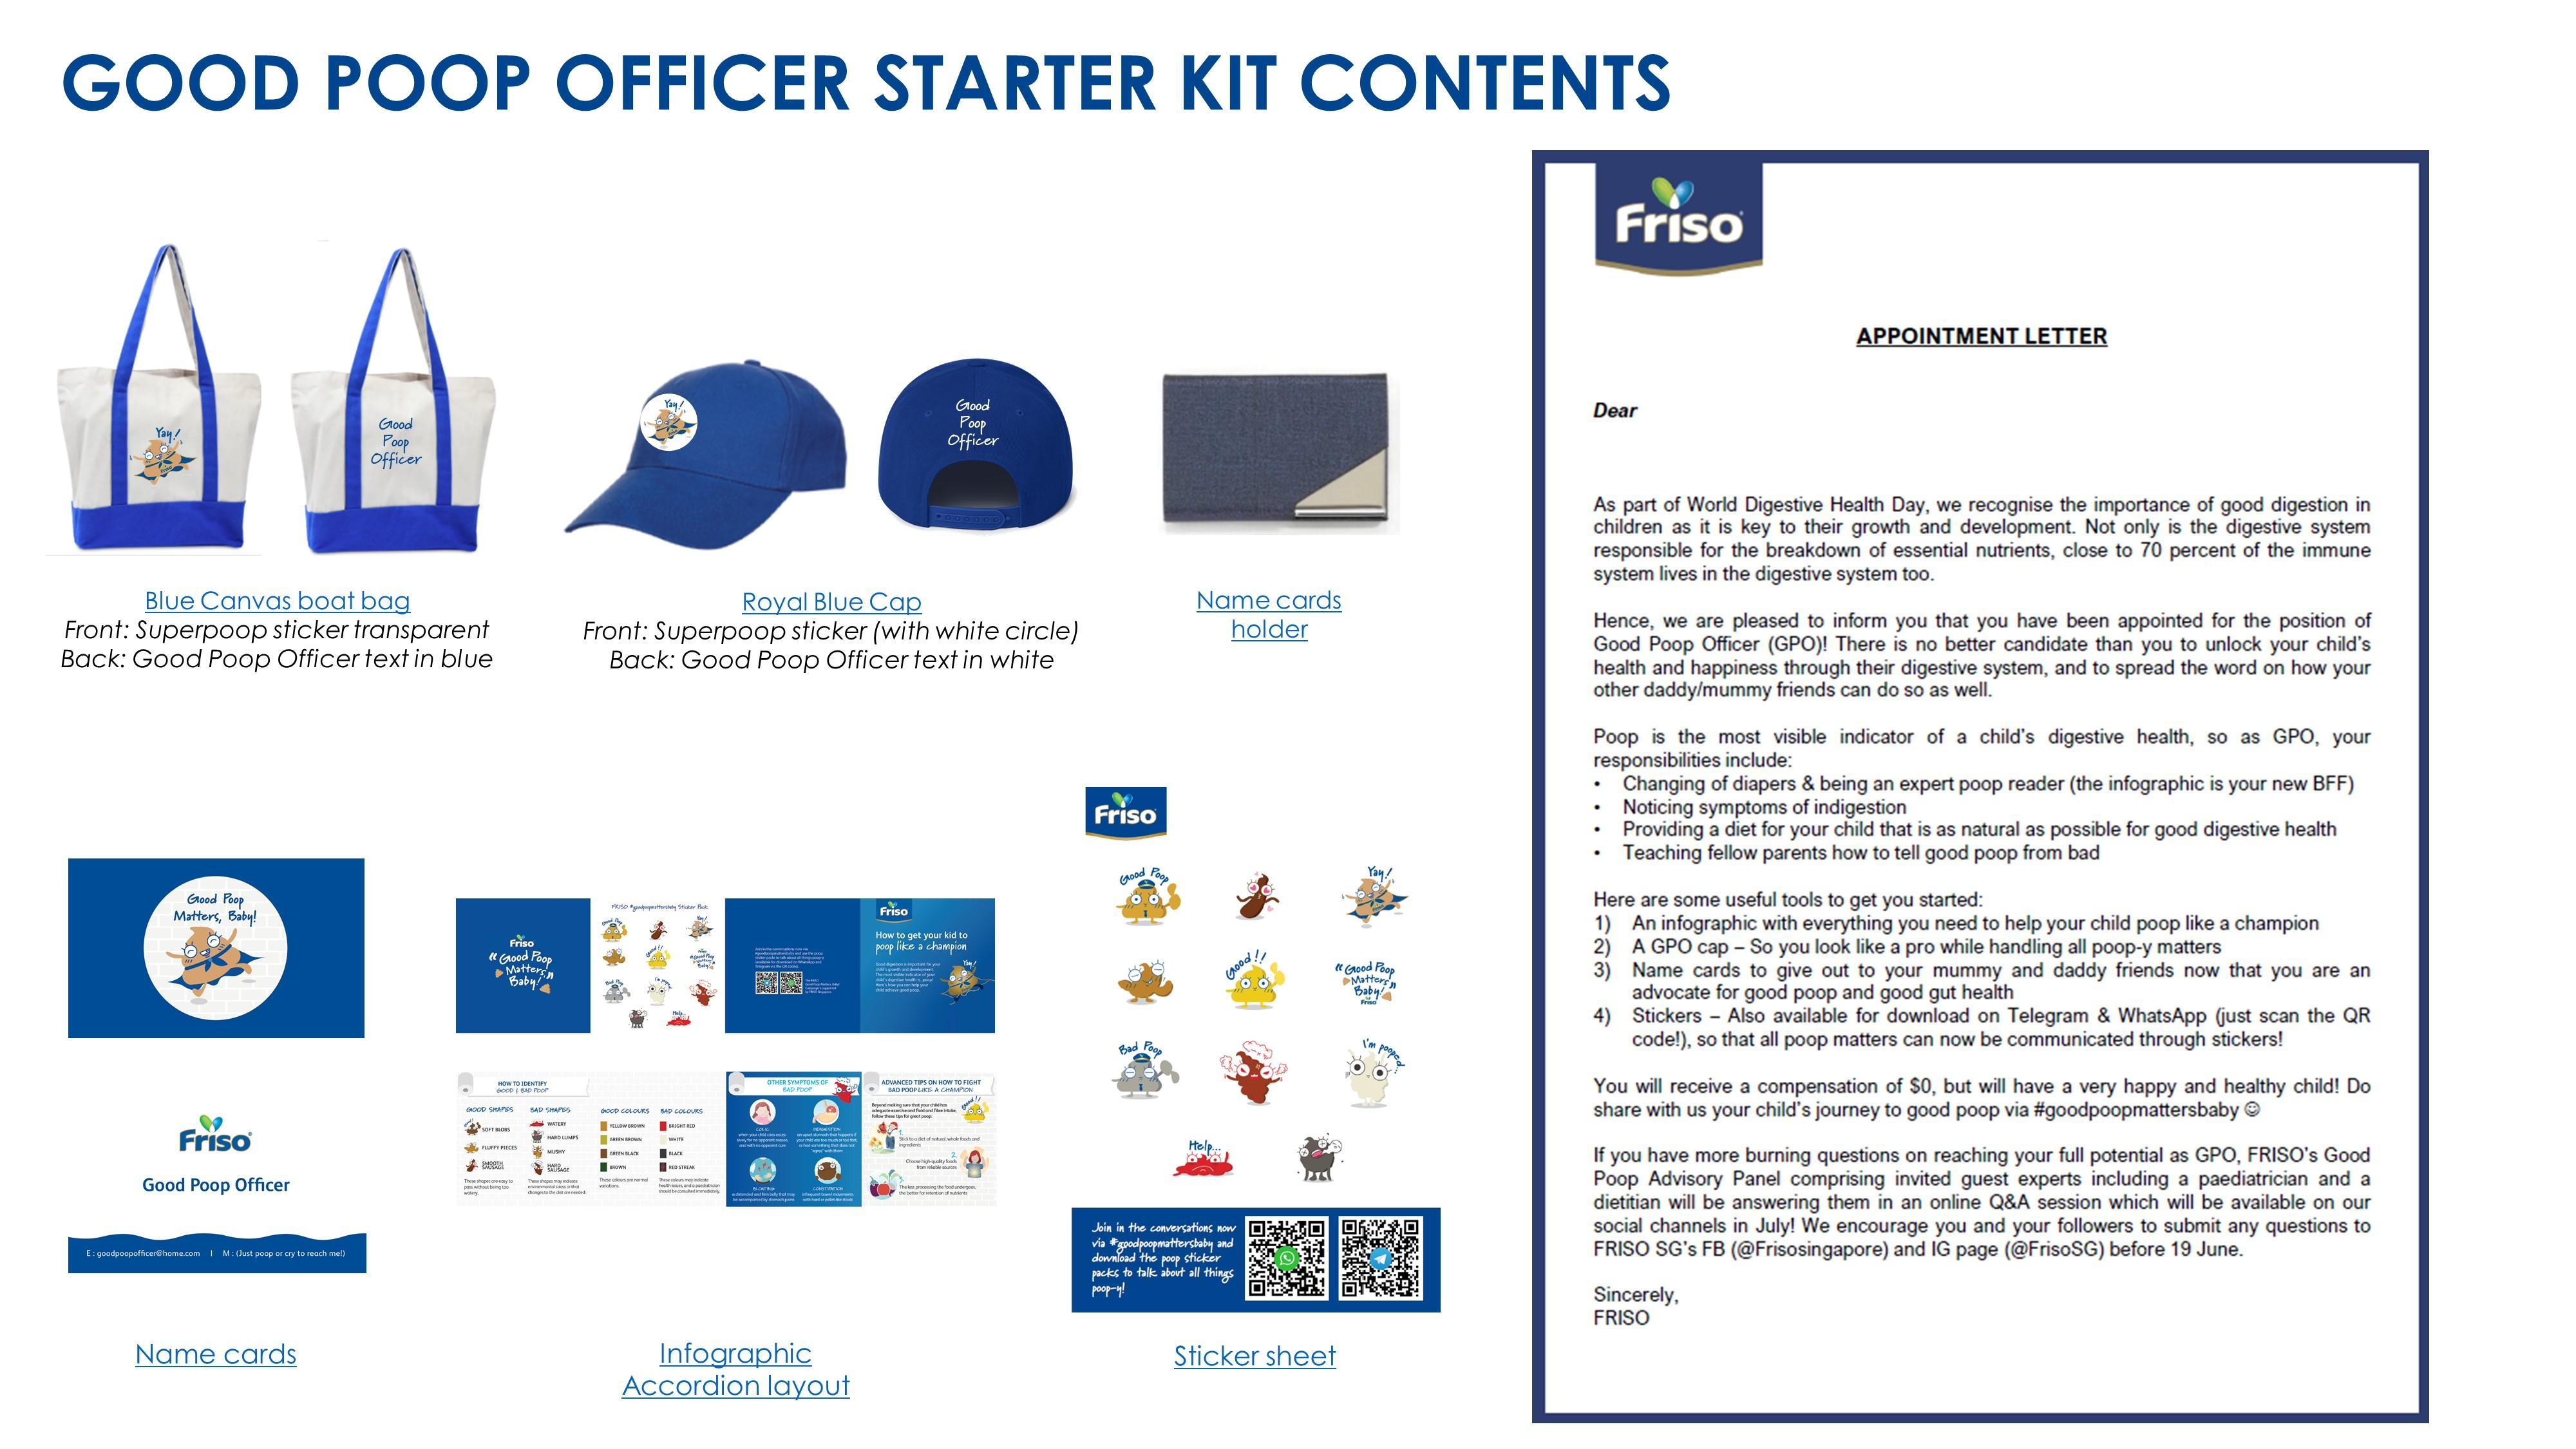 friso good poop officer starter kit content